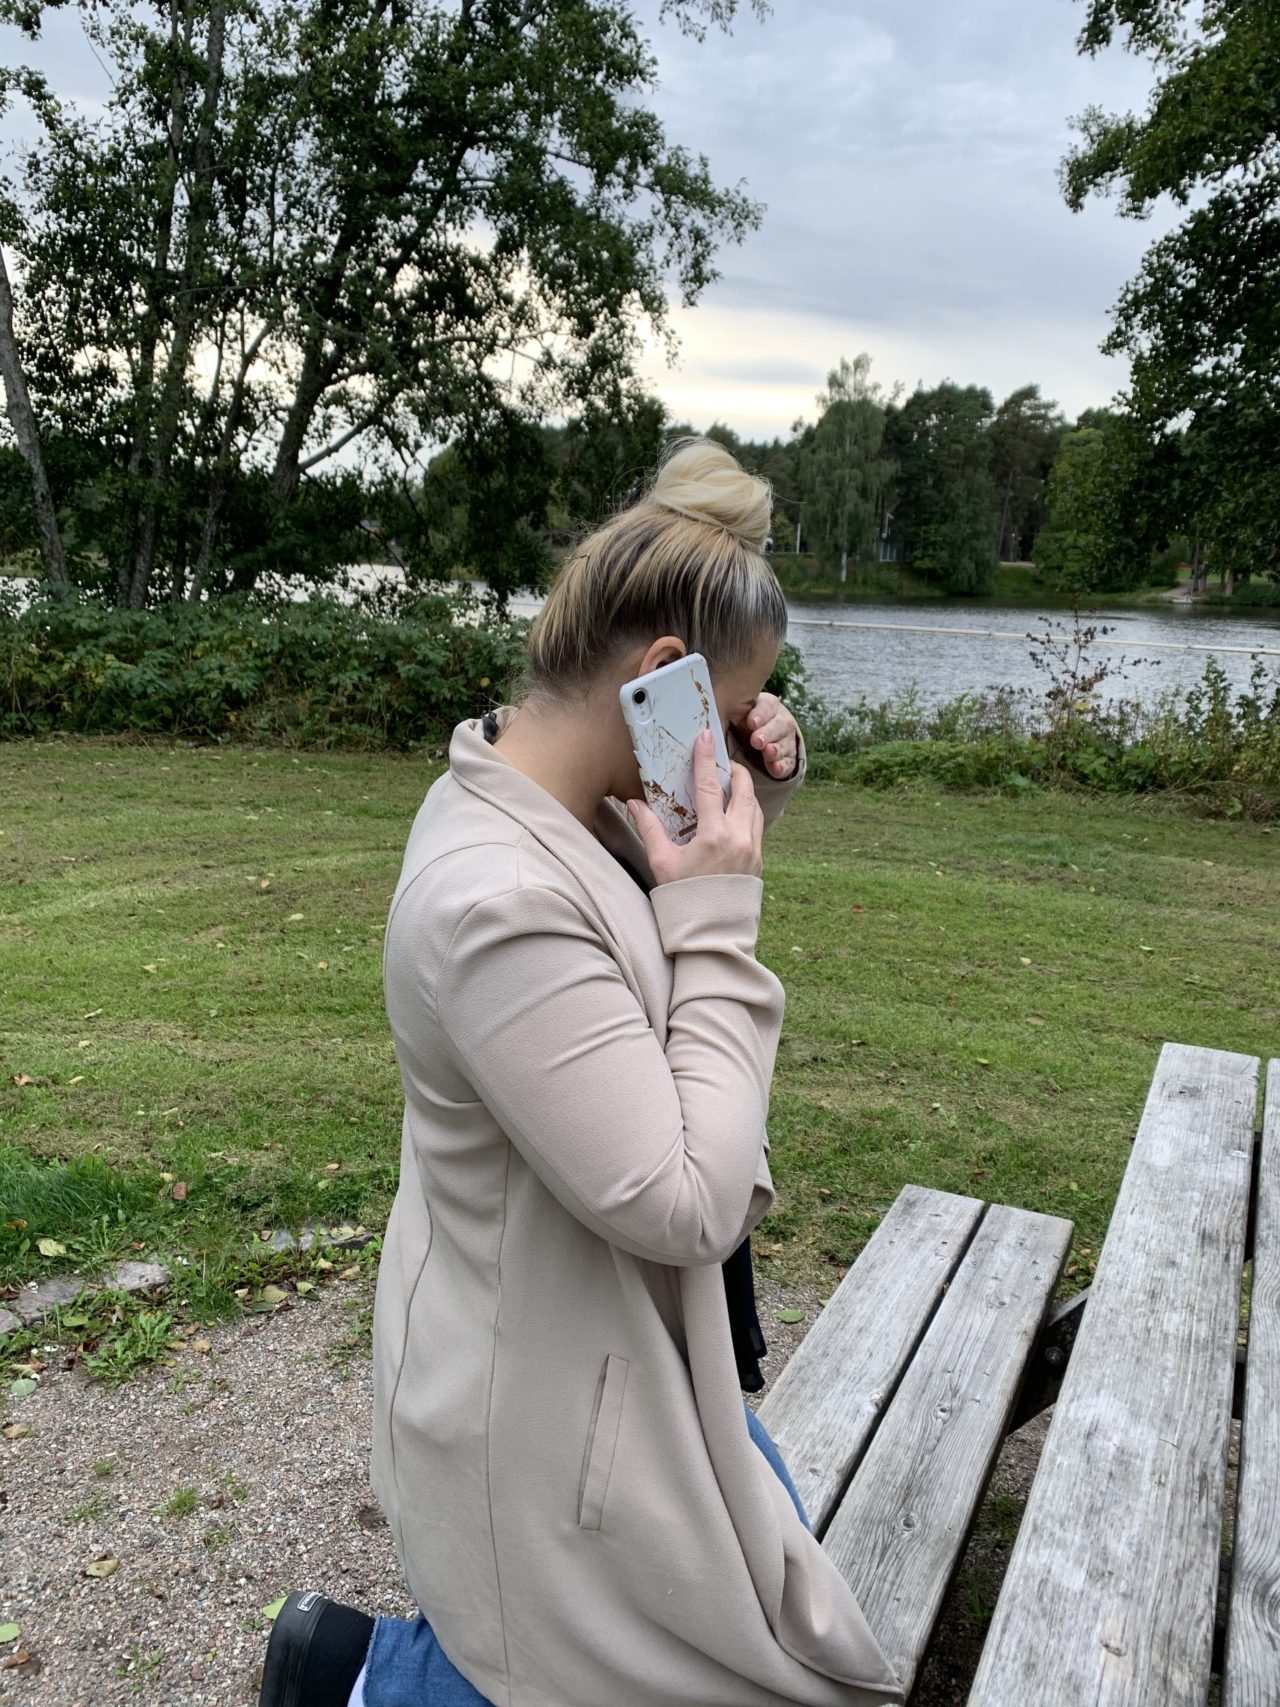 Woman With Her Hand Over Her Face Talking On Phone